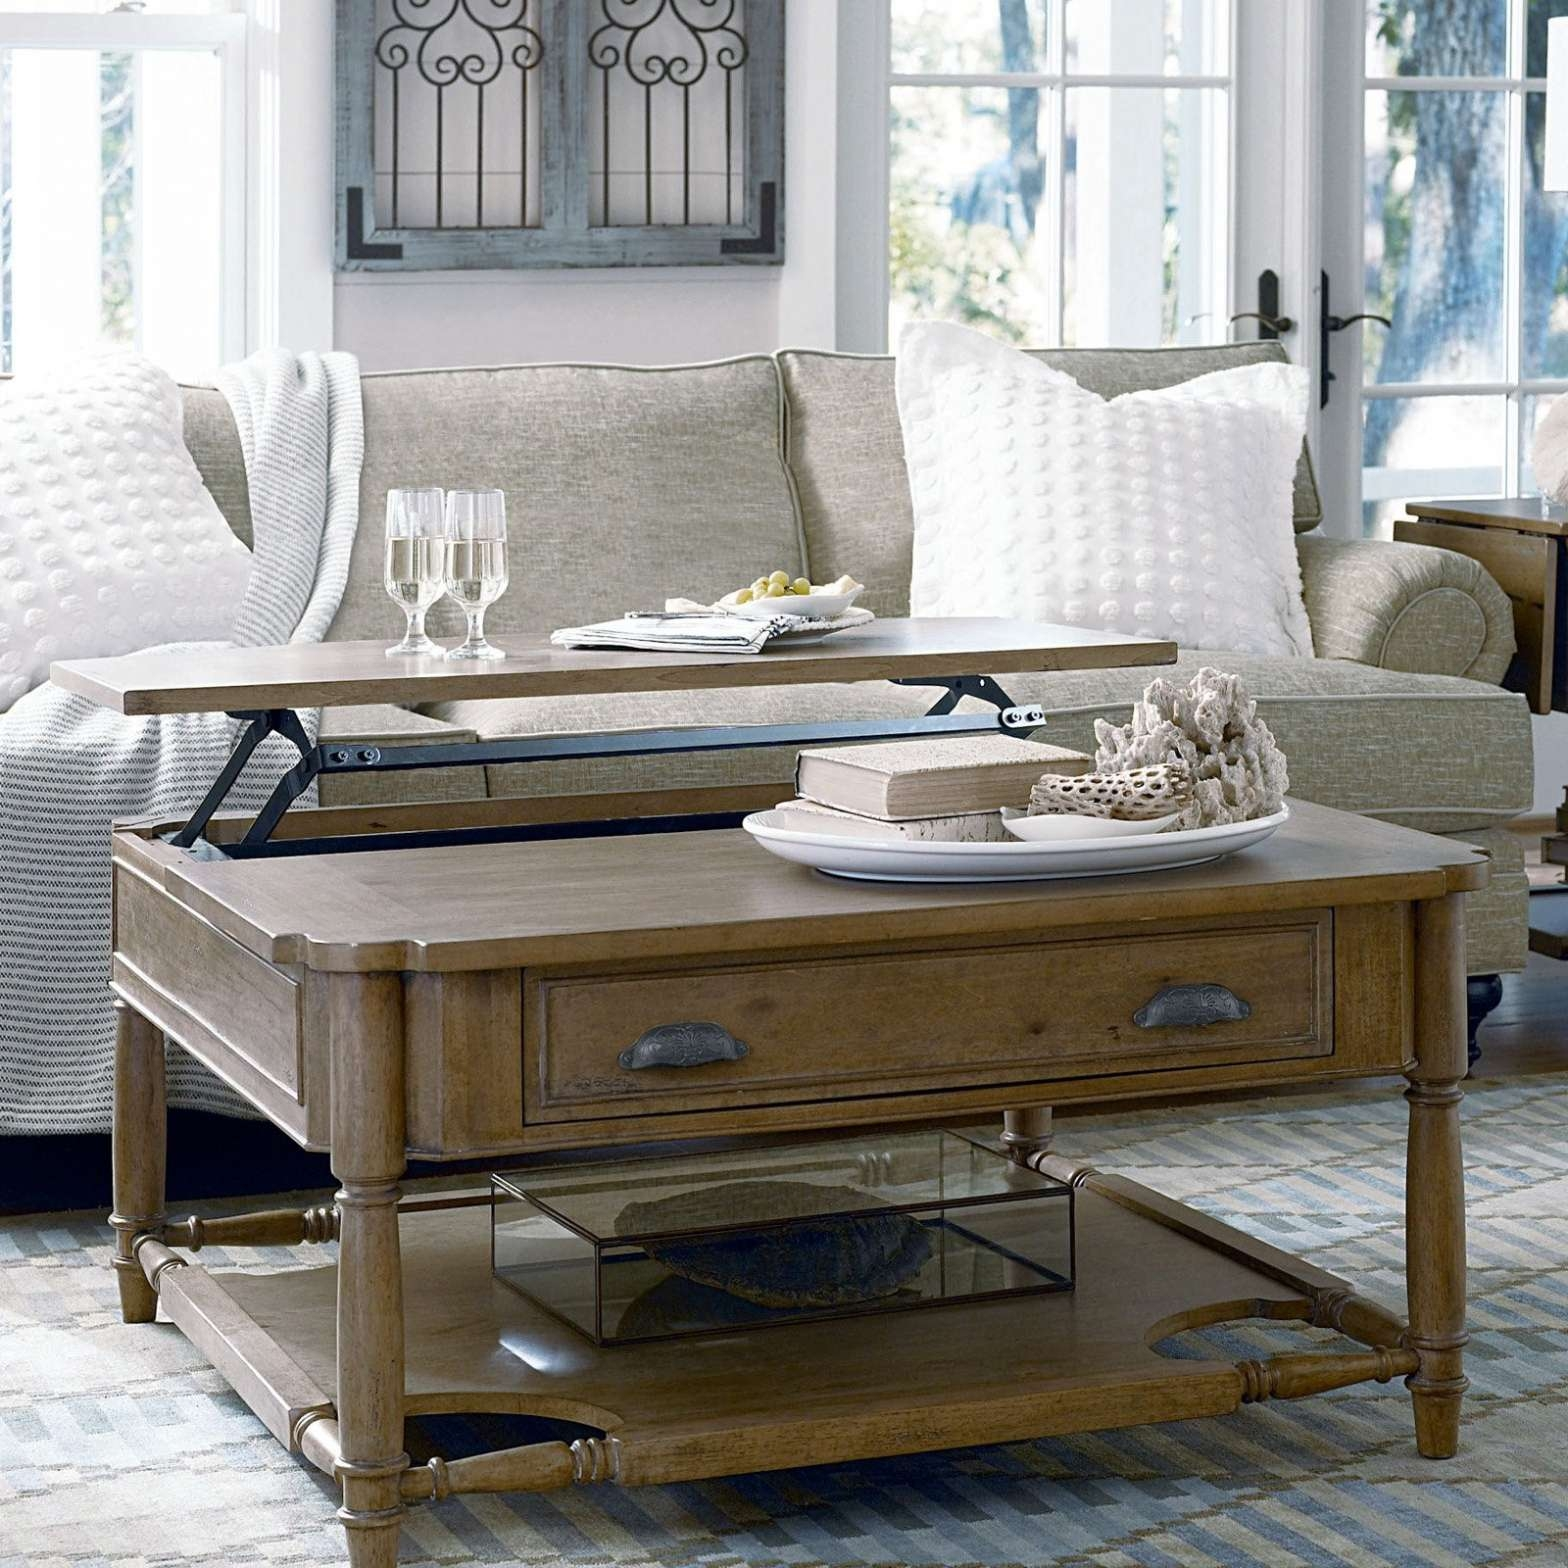 Coffee Tables : Furniture Paula Deen Coffee Table Designs Dark In Most Up To Date Extra Large Low Coffee Tables (View 7 of 20)